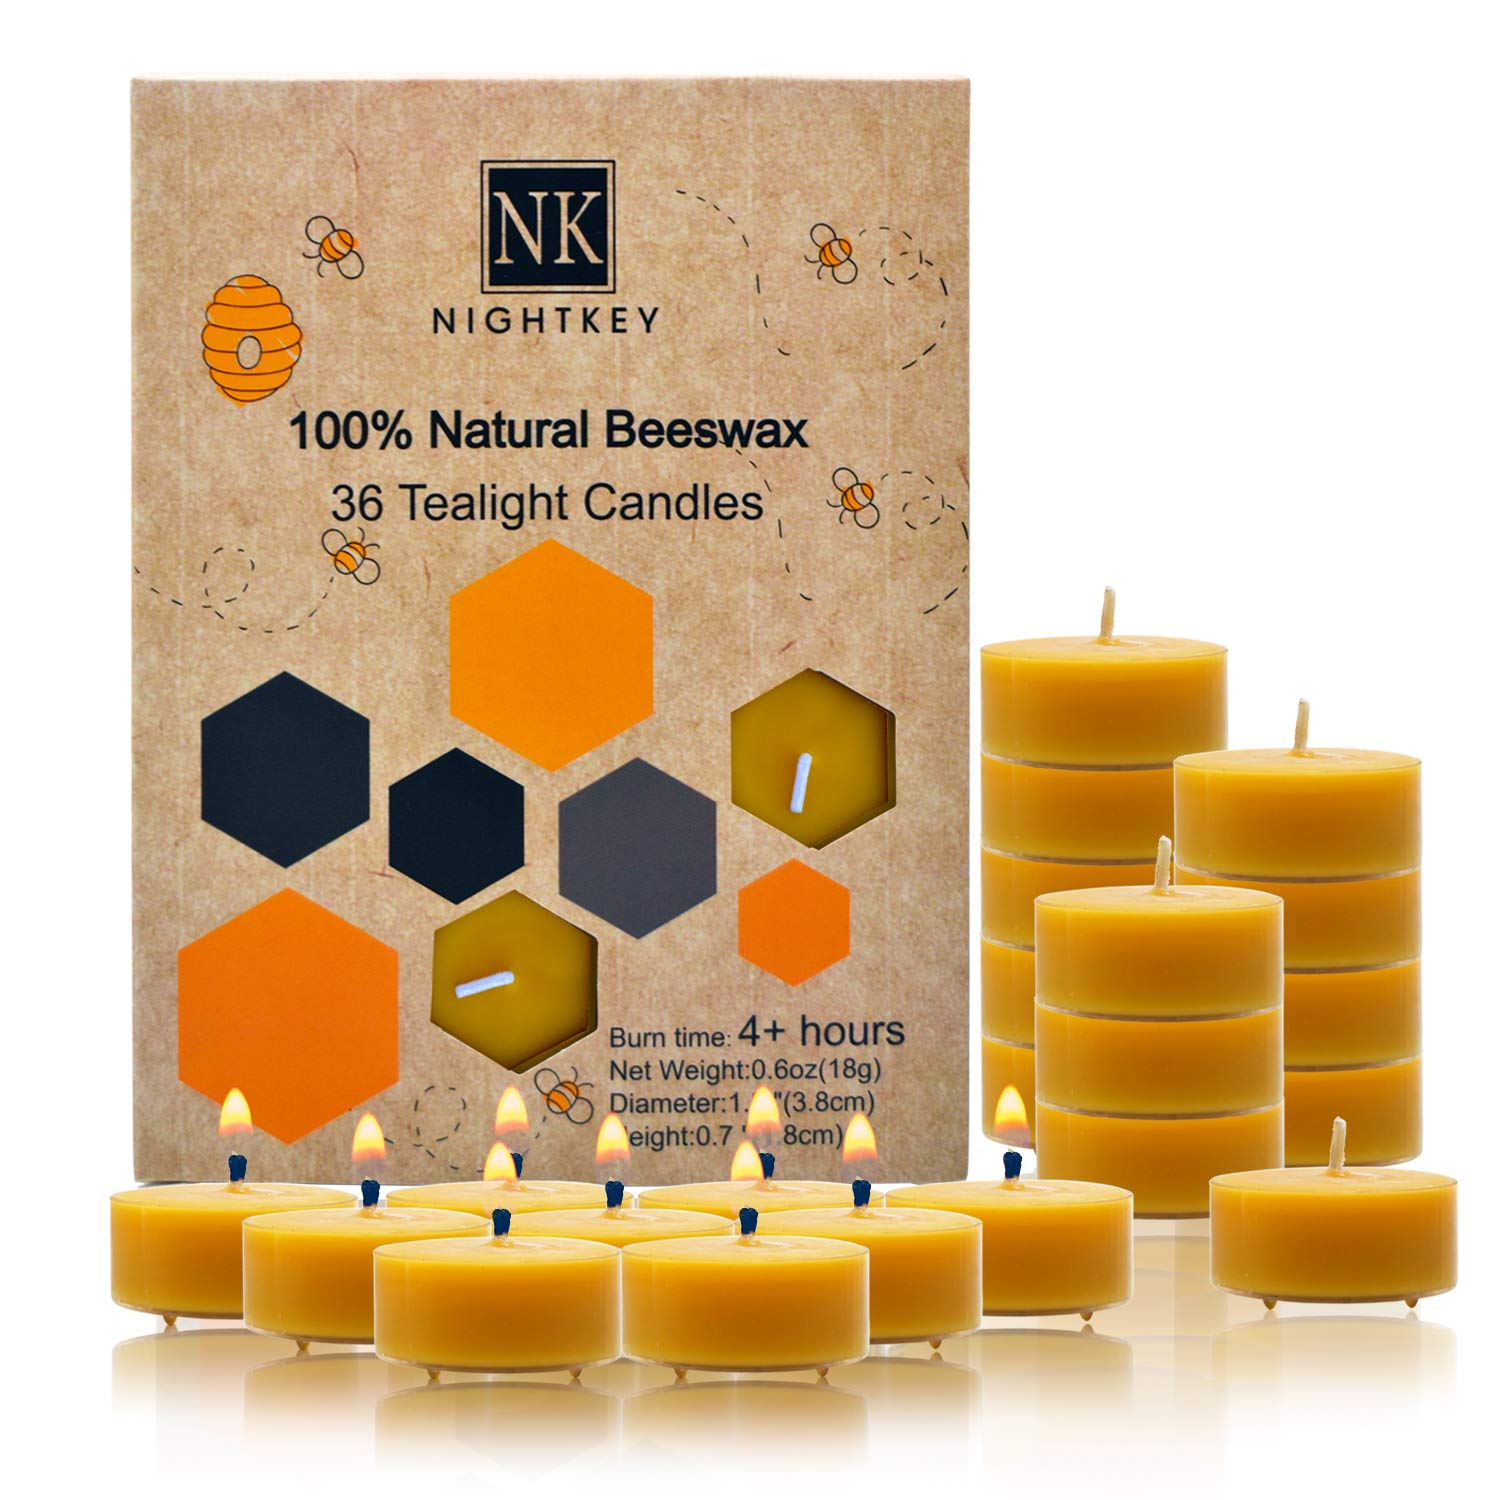 NIGHTKEY Natural Handmade Beeswax Tea Light Candles Smokeless Natural Smell 4 Hours Burning Time (36 case) by NIGHTKEY